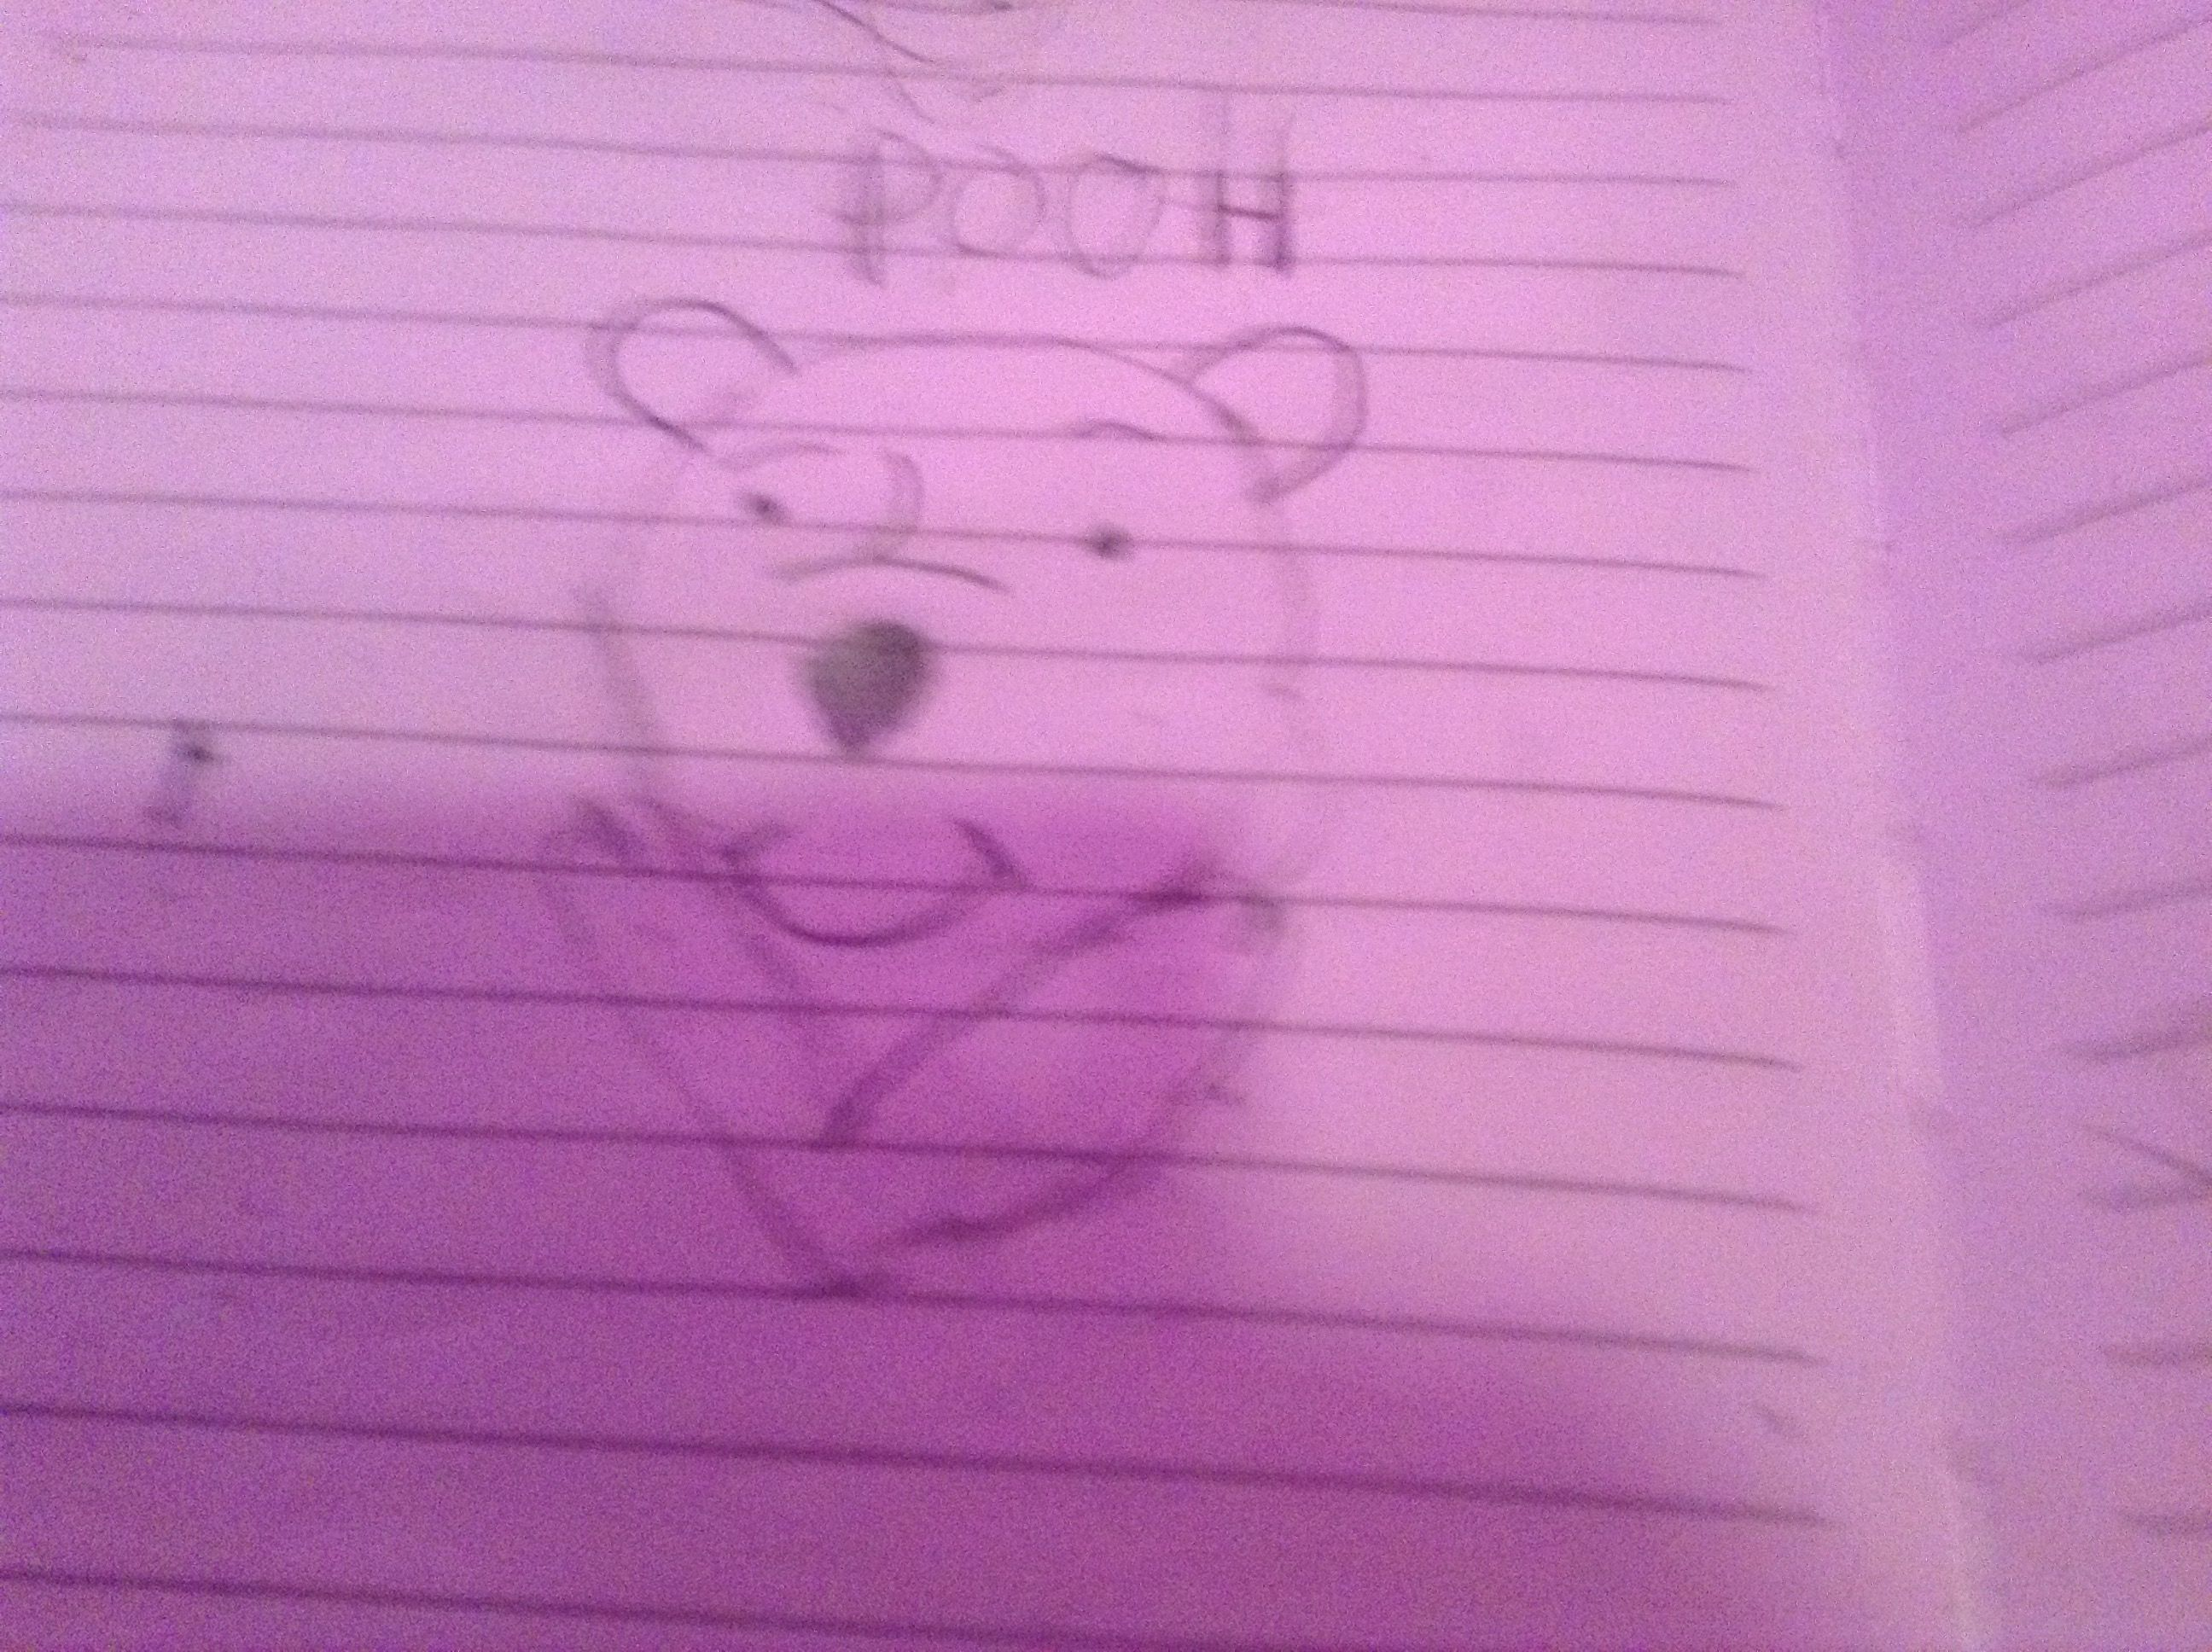 Pooh bear in 2020 Doodle for beginners, Neon signs, Pooh